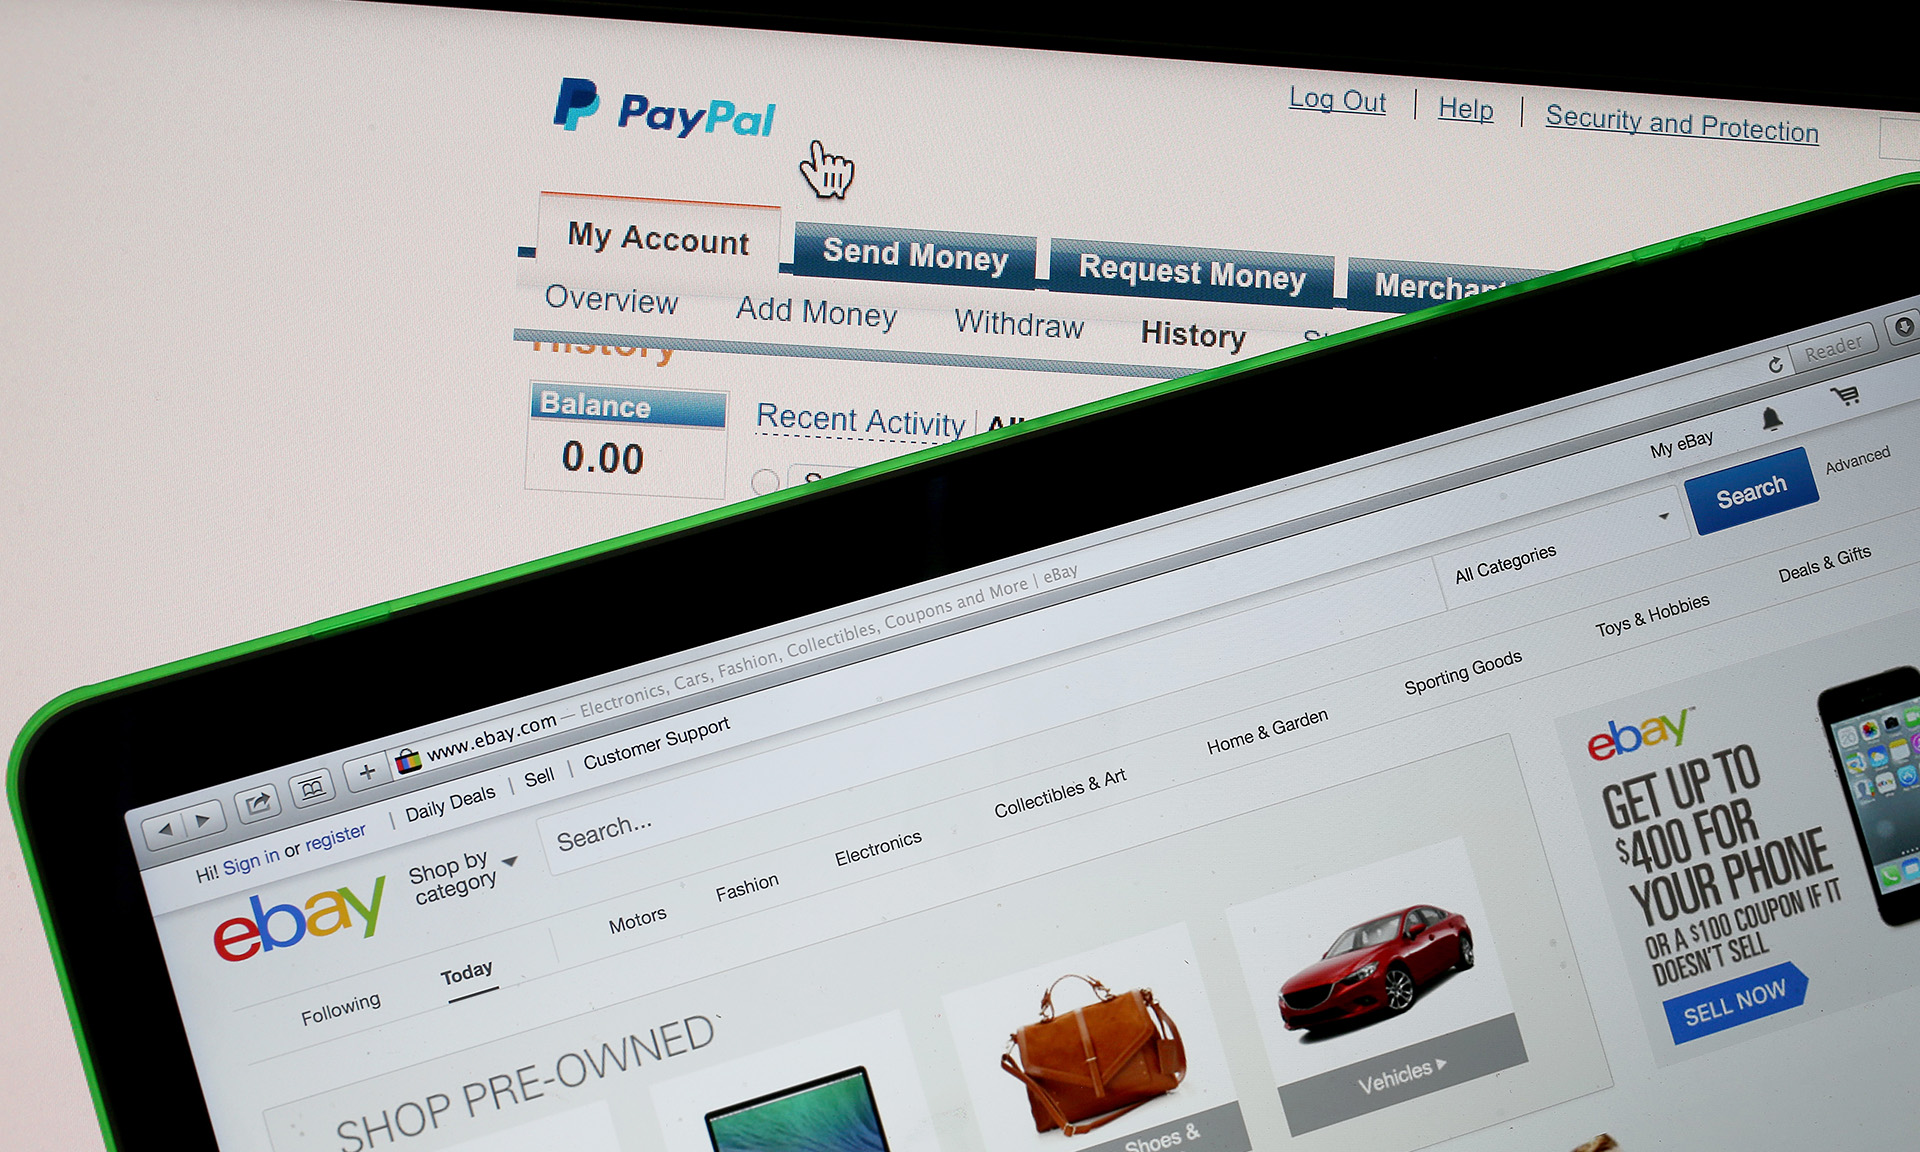 How fast do you get your money from ebay to paypal